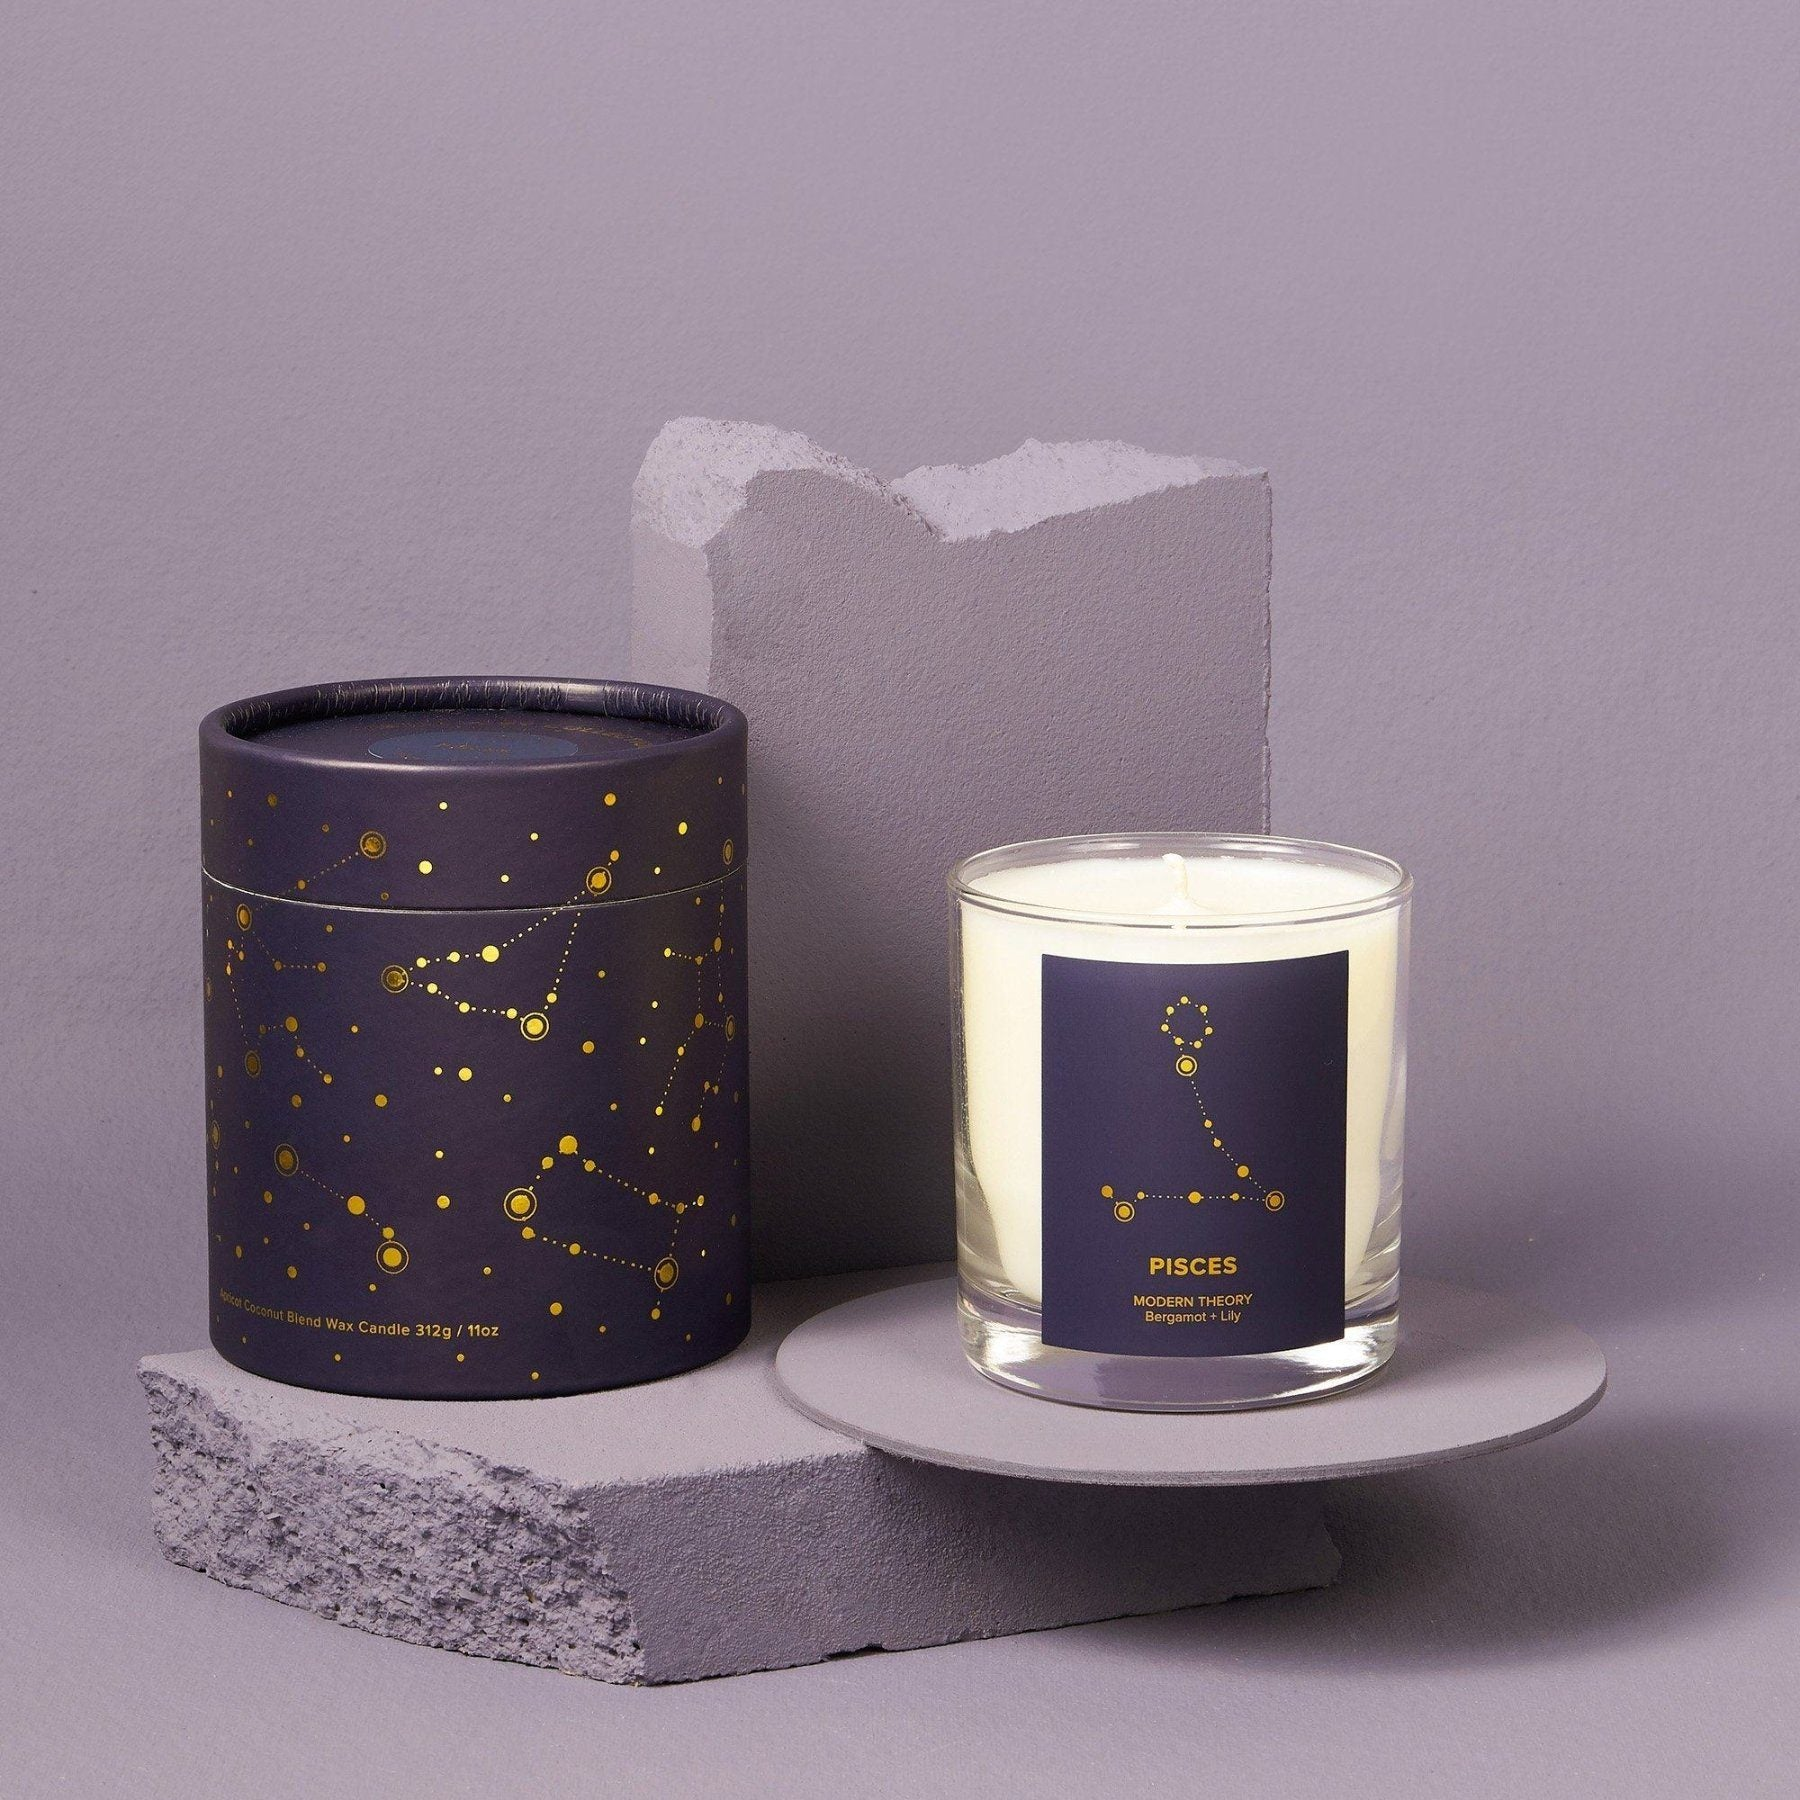 white candle in glass jar with pisces label next to matching navy decorative box with astrology pattern